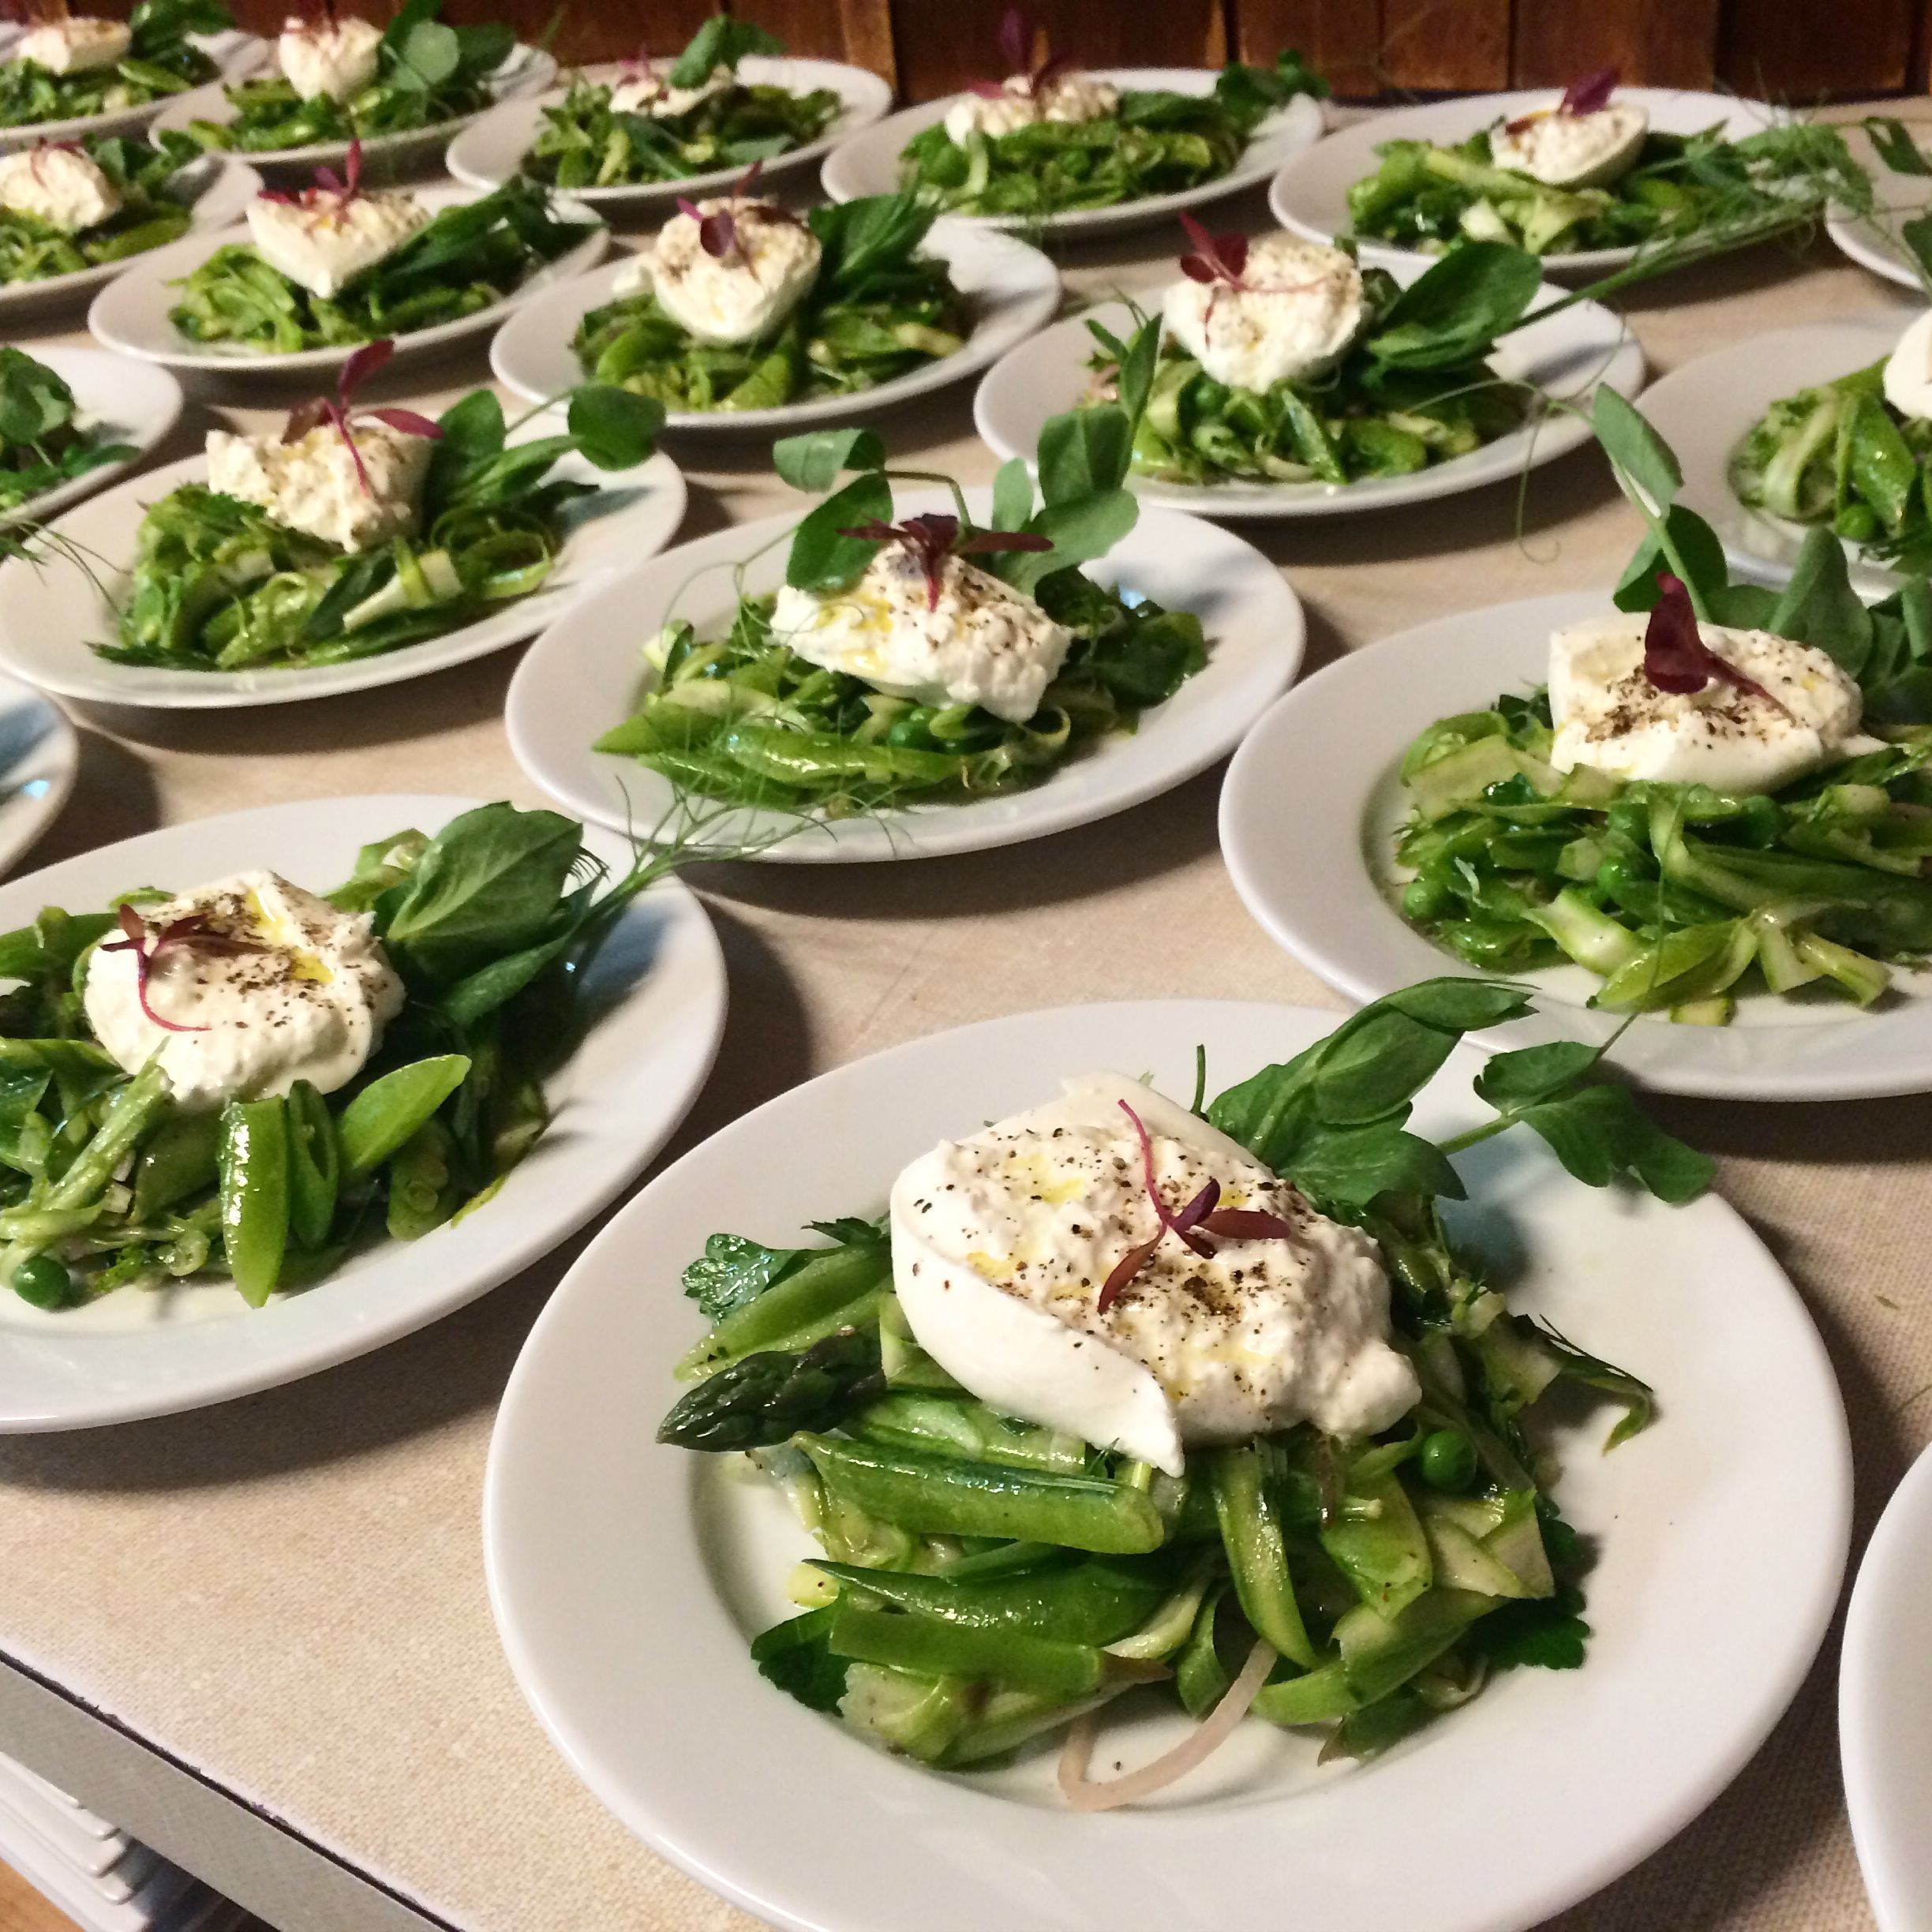 Burrata with Peas, Shaved Asparagus, Tendrils, and Herbs